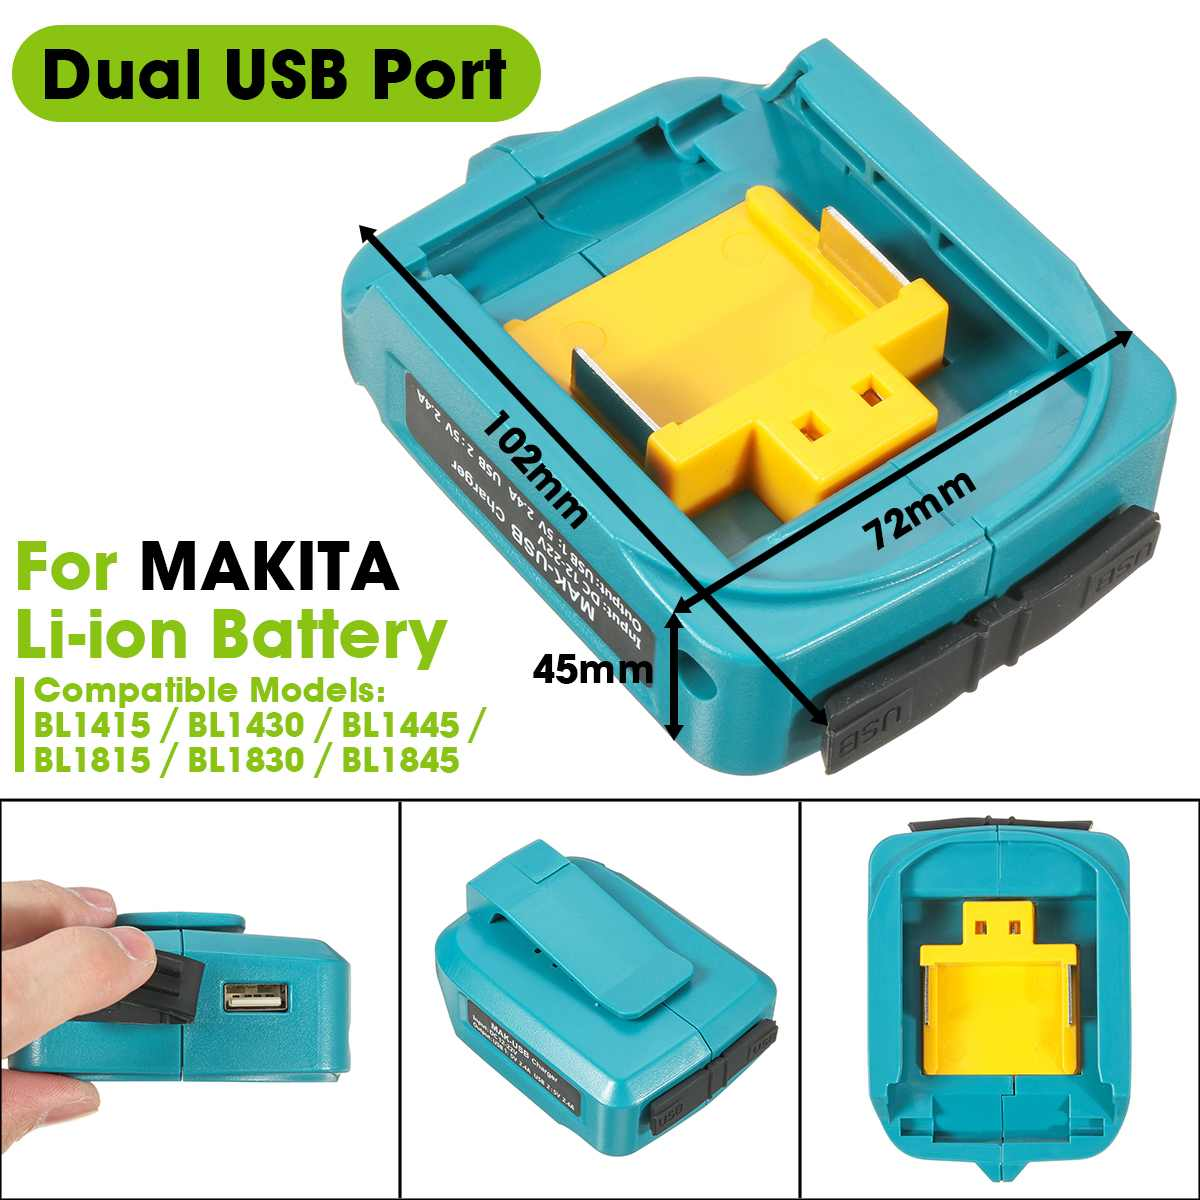 Dual USB Port <font><b>Adapter</b></font> Charging <font><b>Adapter</b></font> Converter For MAKITA 12-<font><b>22V</b></font> Li-ion Battery image